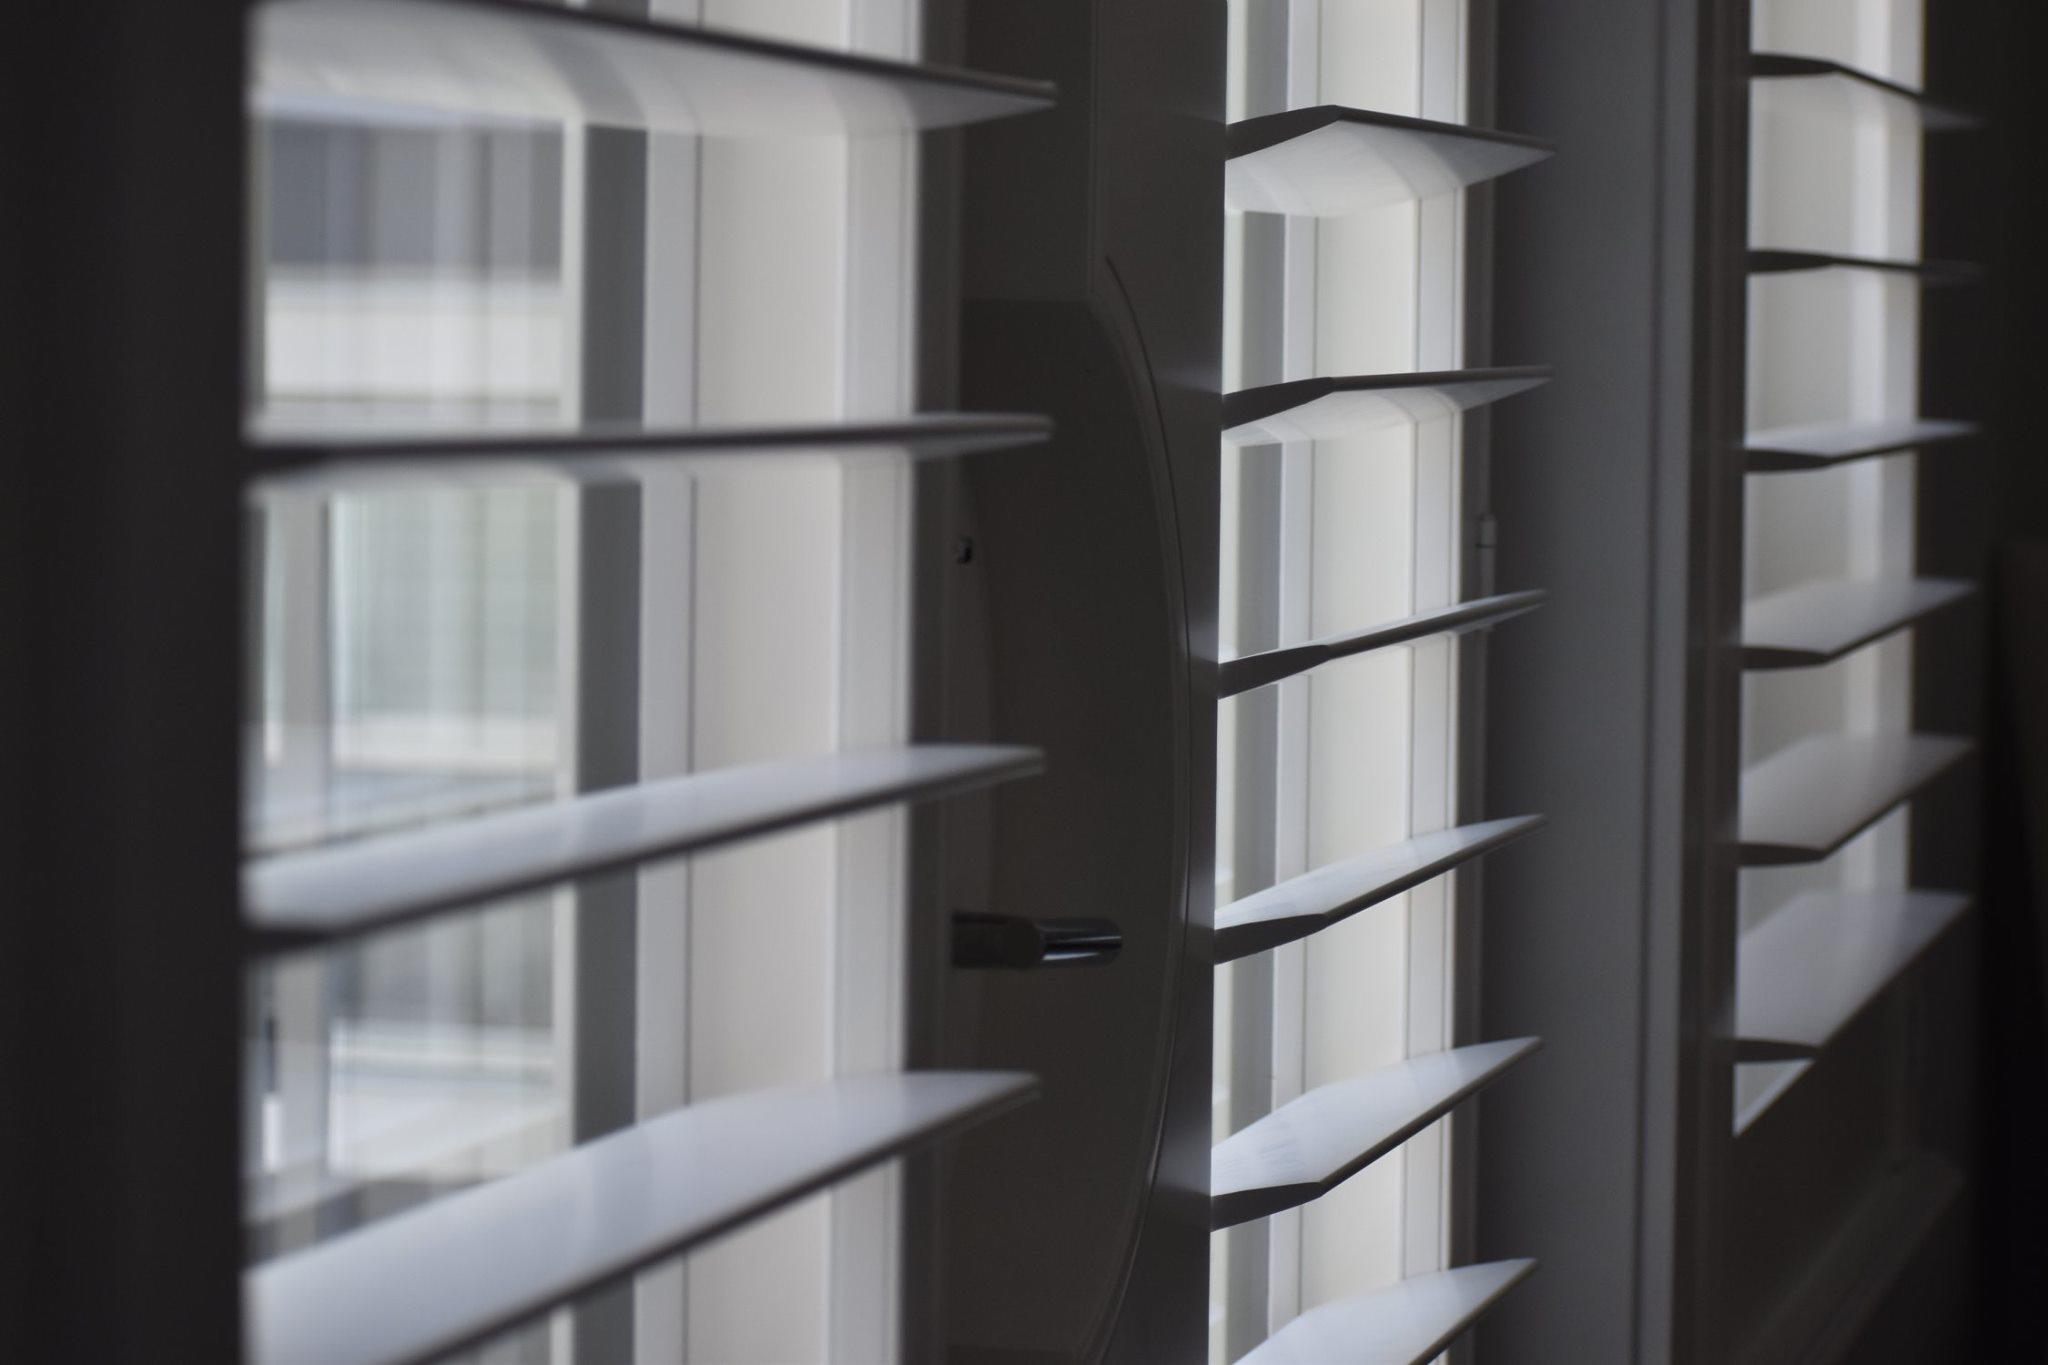 Budget Blinds of Delta, South Surrey and White Rock in Delta: Large Slat Shutters : These Norman large slat shutters created a dramatic look for our clients dining room, along with custom handle cut outs in a custom white to match their trim